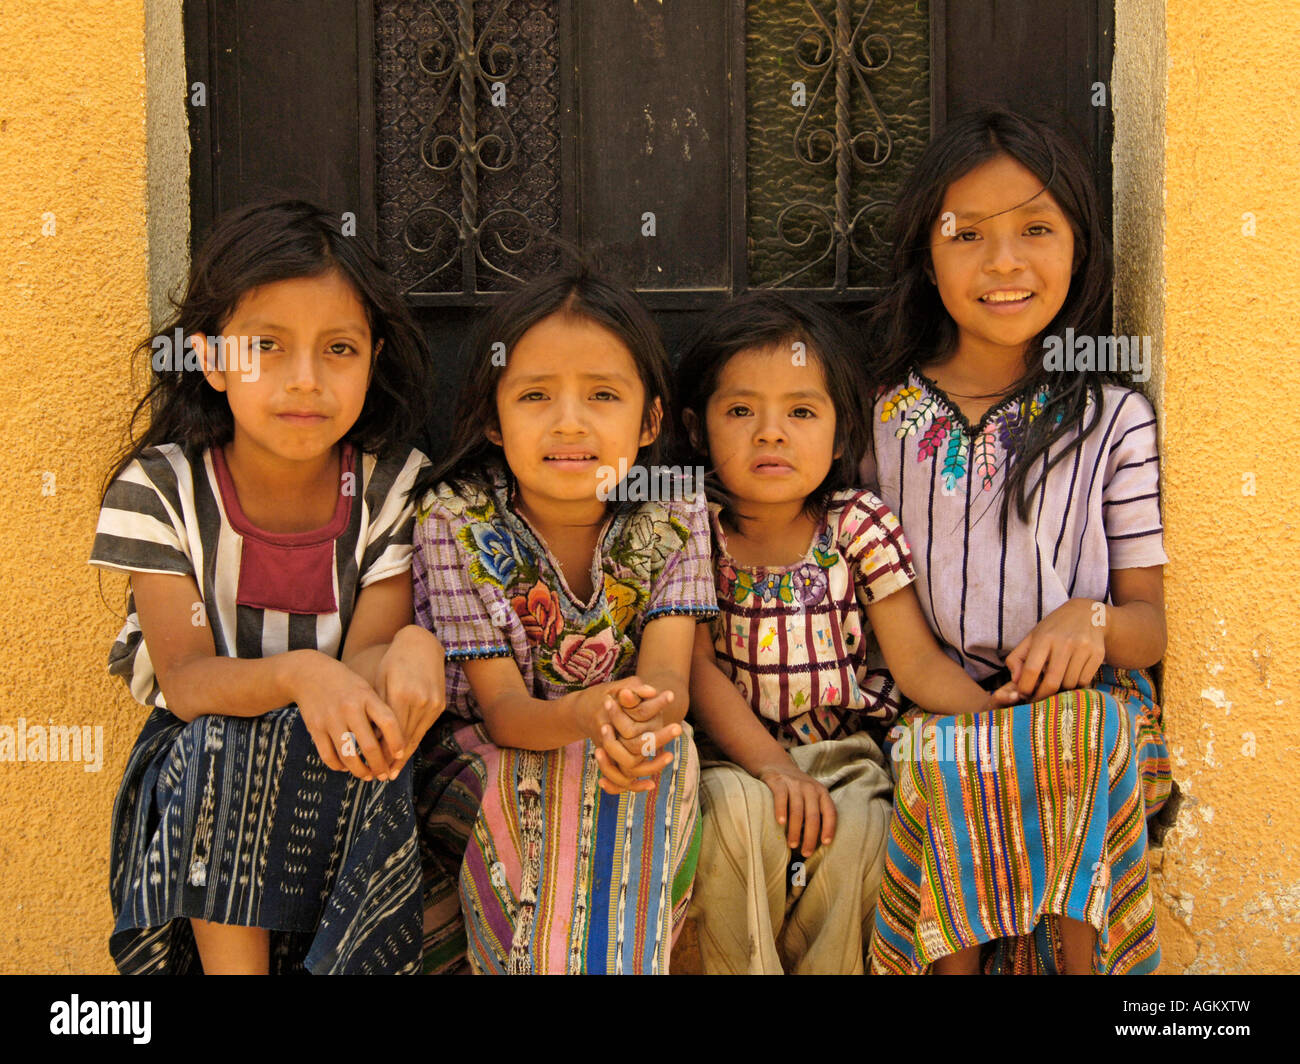 Guatemala, Santiago Atitlan, Portrait of four young girls sitting in a doorway. - Stock Image